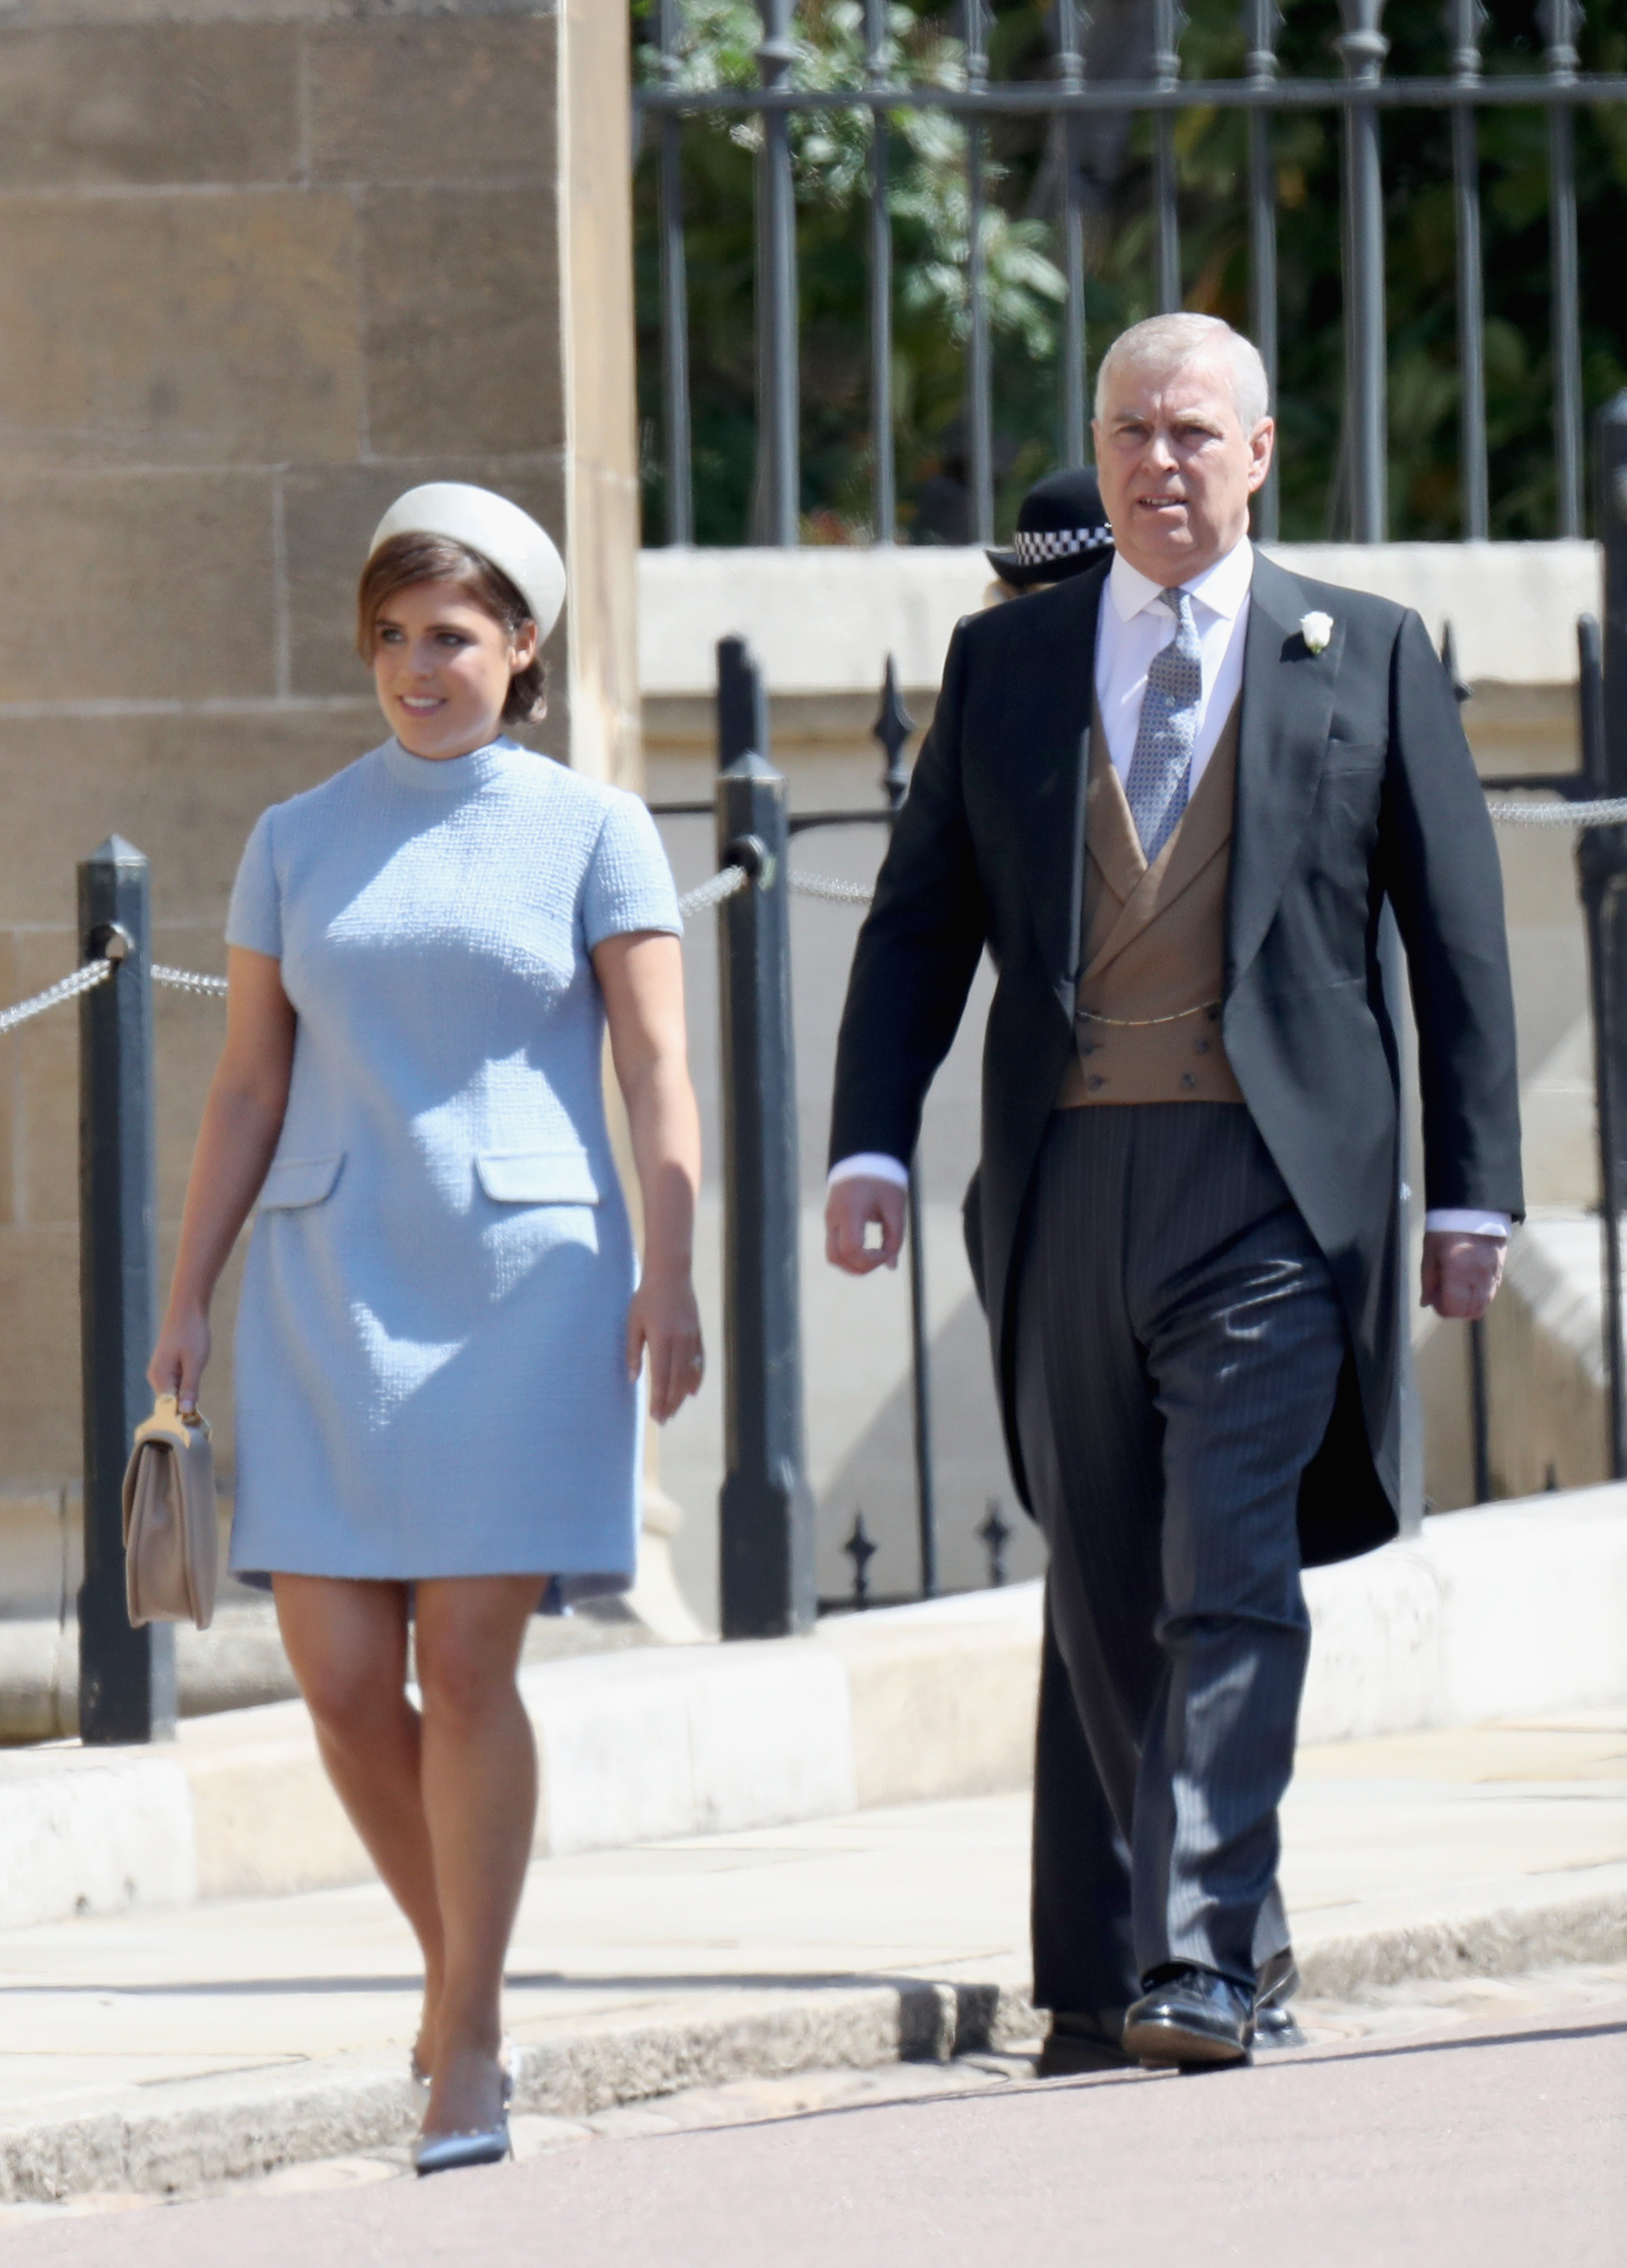 (L-R) Princess Eugenie and Prince Andrew, Duke of York attend the wedding of Prince Harry to Ms Meghan Markle at St George's Chapel, Windsor Castle on May 19, 2018 in Windsor, England. Prince Henry Charles Albert David of Wales marries Ms. Meghan Markle in a service at St George's Chapel inside the grounds of Windsor Castle. Among the guests were 2200 members of the public, the royal family and Ms. Markle's Mother Doria Ragland.